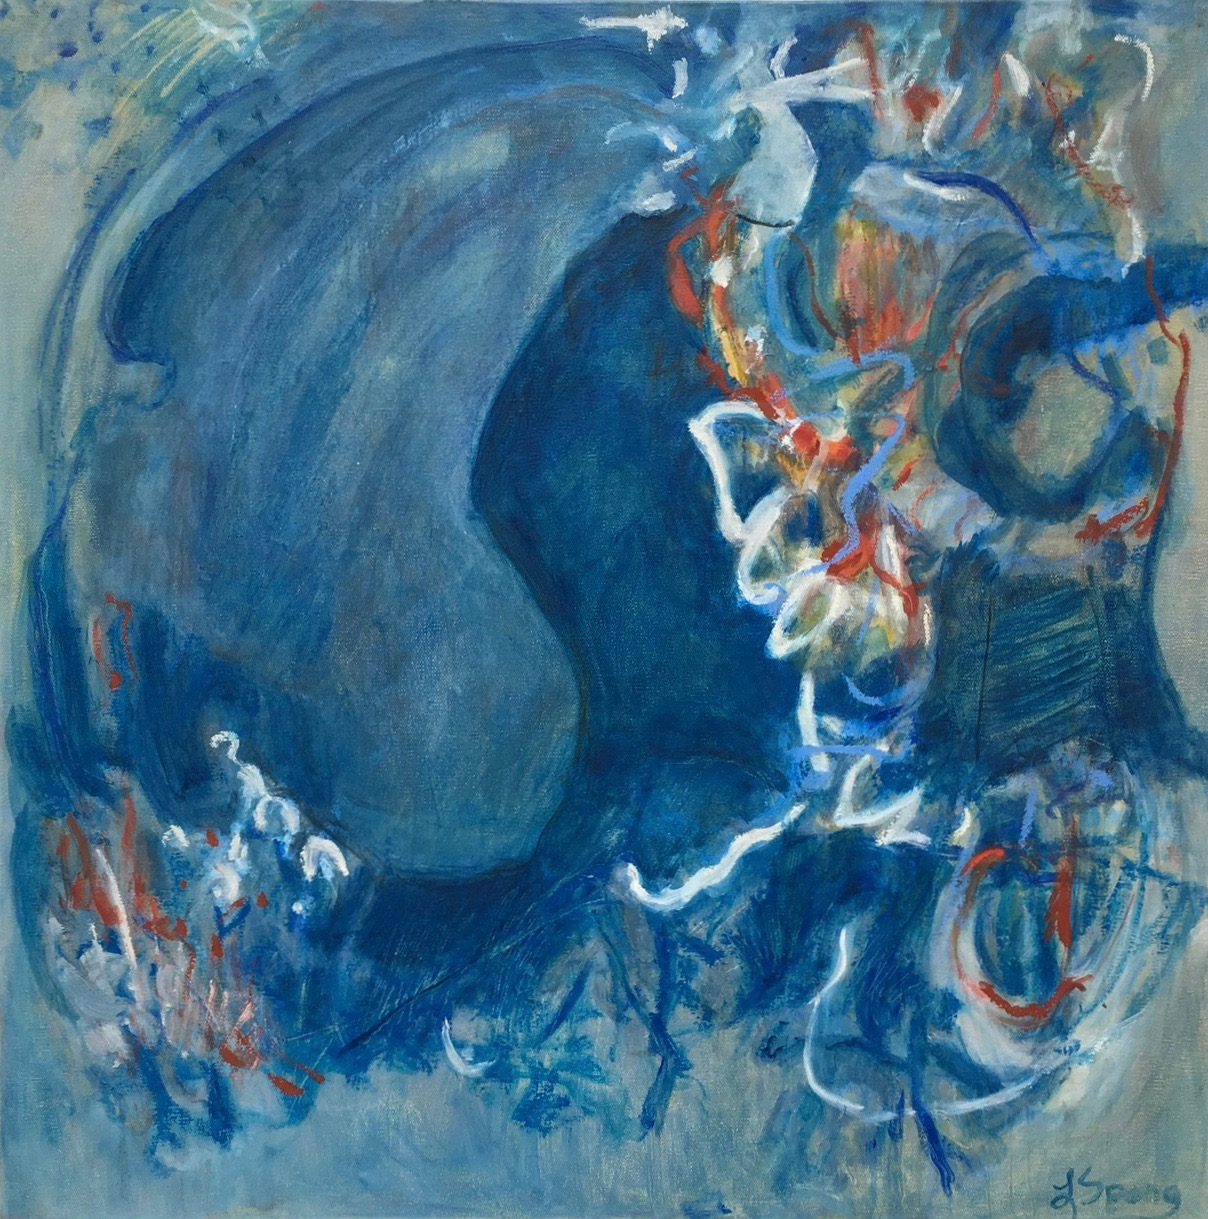 Laura Spong, Time Is Taking Its Time , 2008-17, oil on canvas, 24 x 24 in. (if ART Gallery)